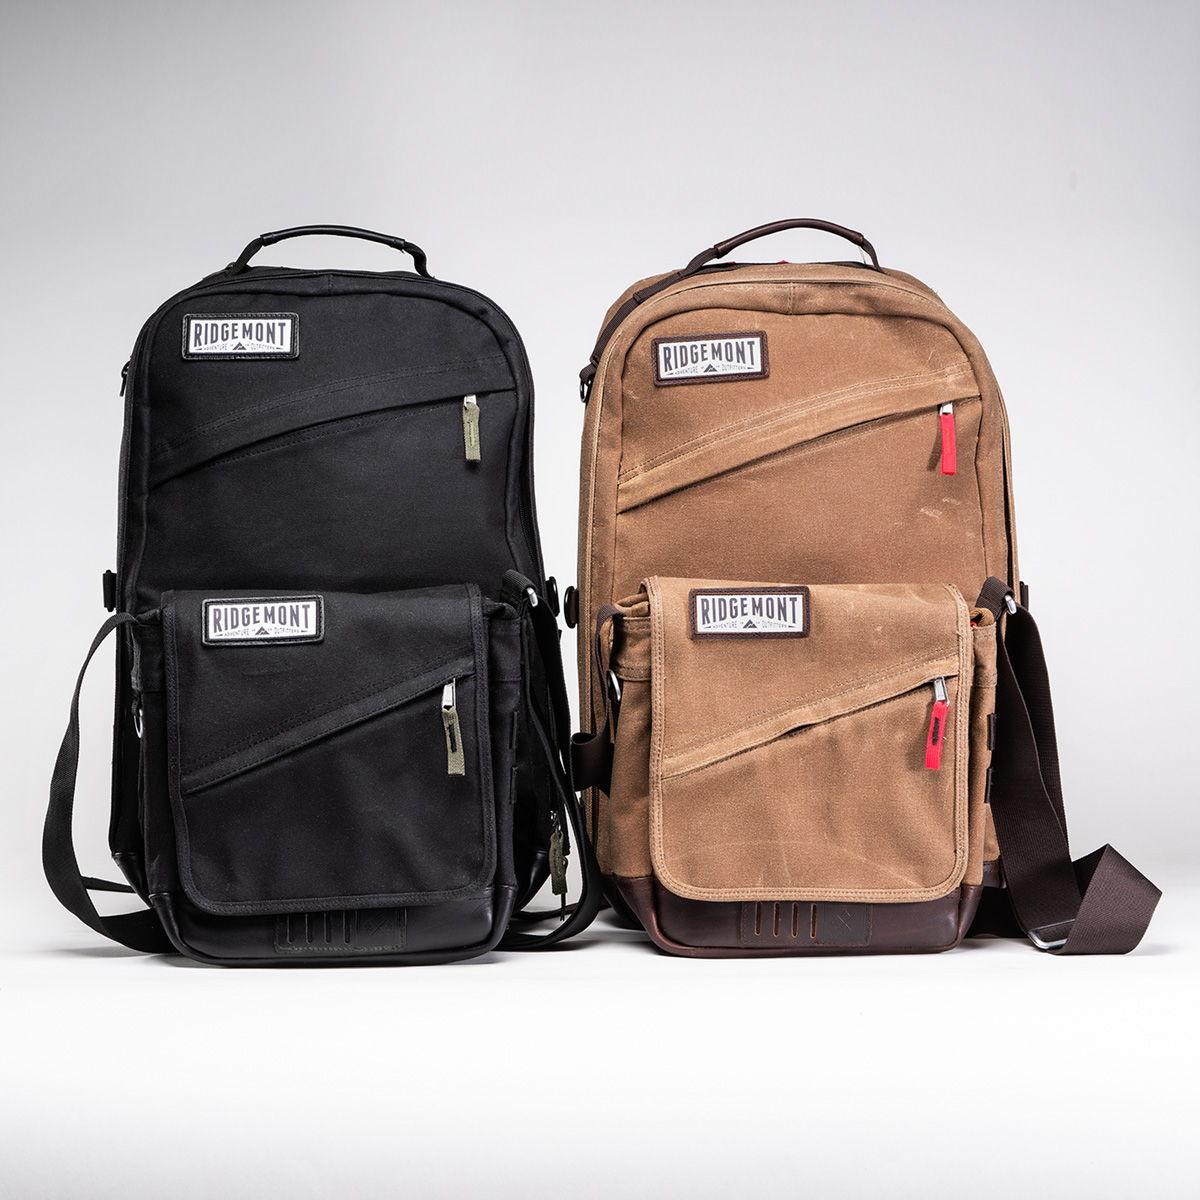 The Ranger Backpack and Roam Field Bags. In Brown or Black